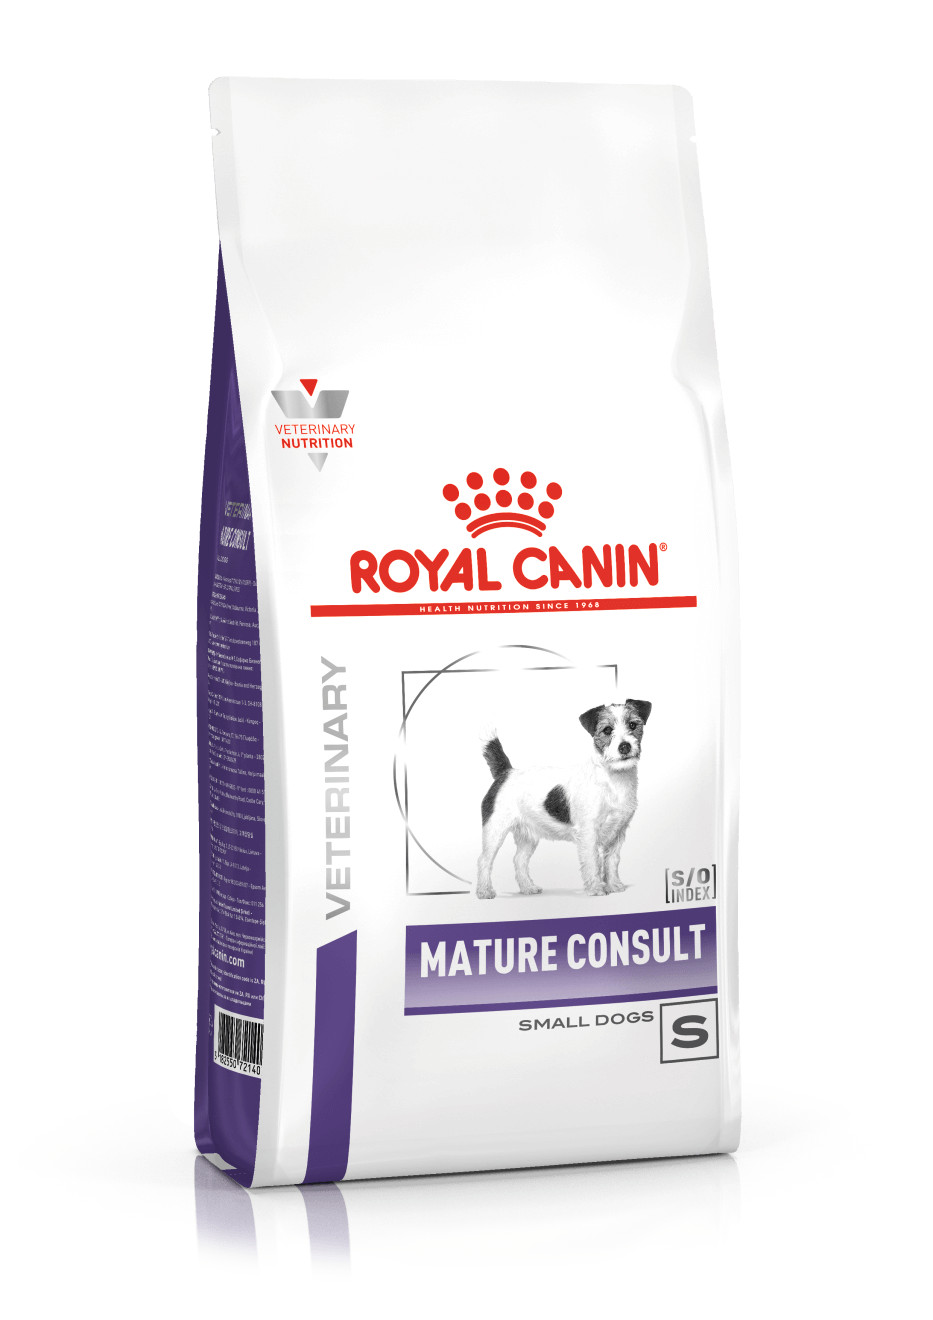 Royal Canin Veterinary Mature Consult Small Dogs pour chien